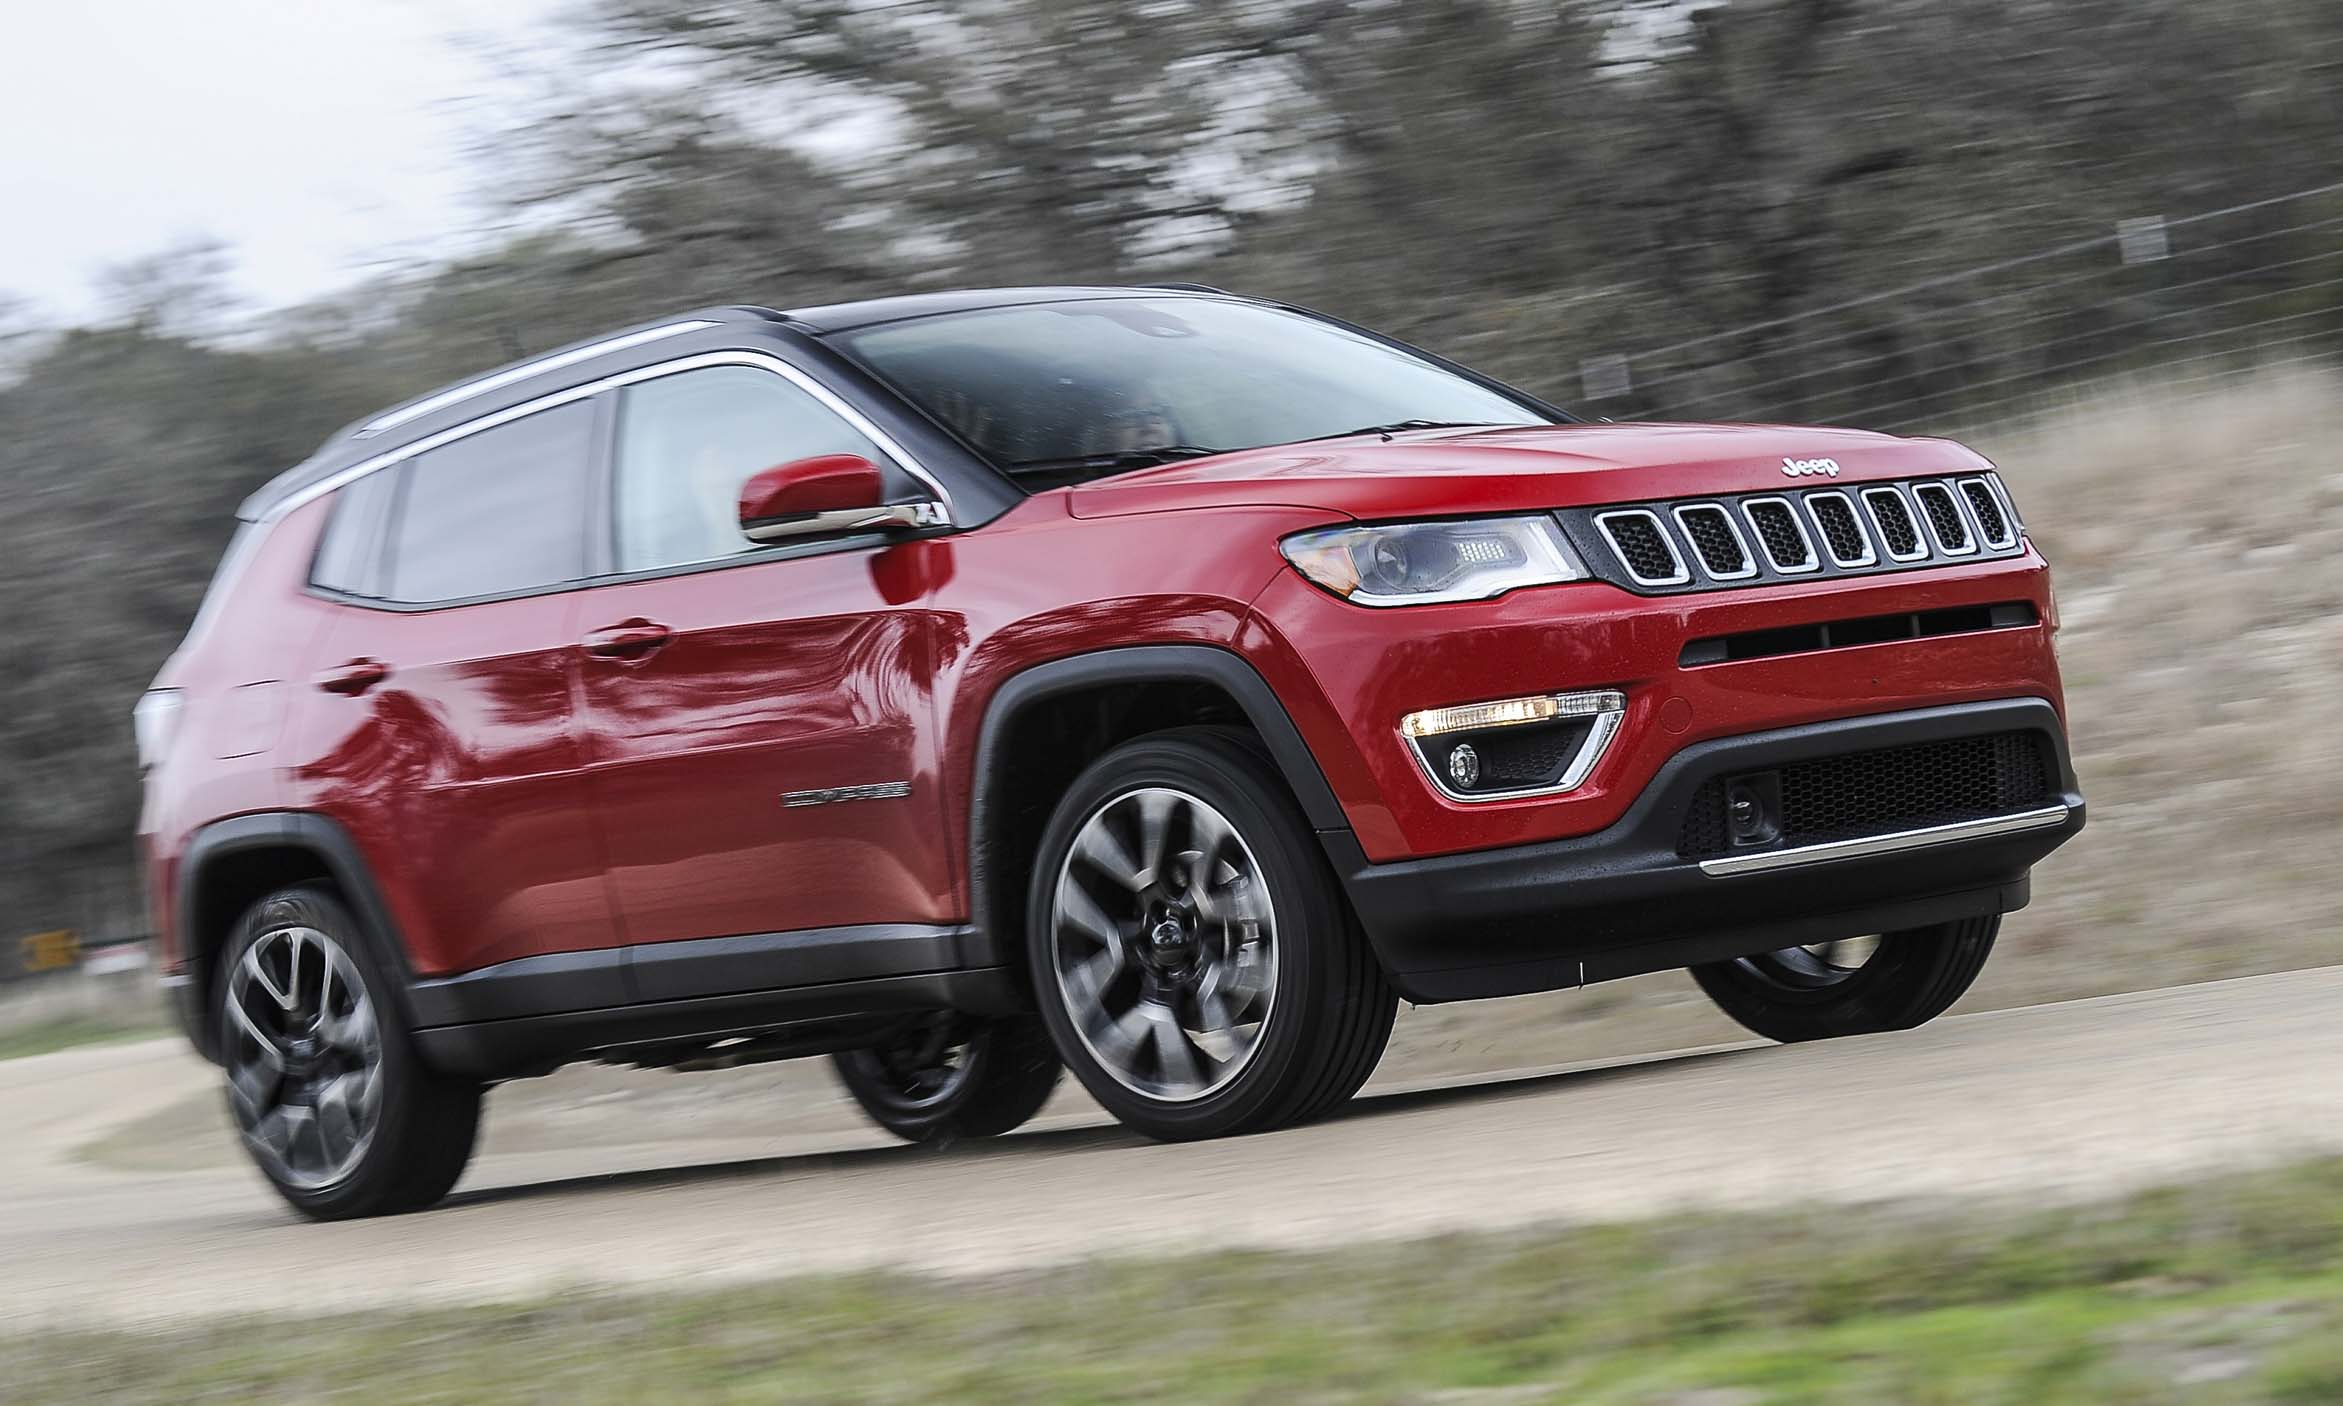 small resolution of number of vehicles affected 2 761 report date may 1 2018 issue chrysler fca us llc is recalling certain 2018 jeep compass vehicles